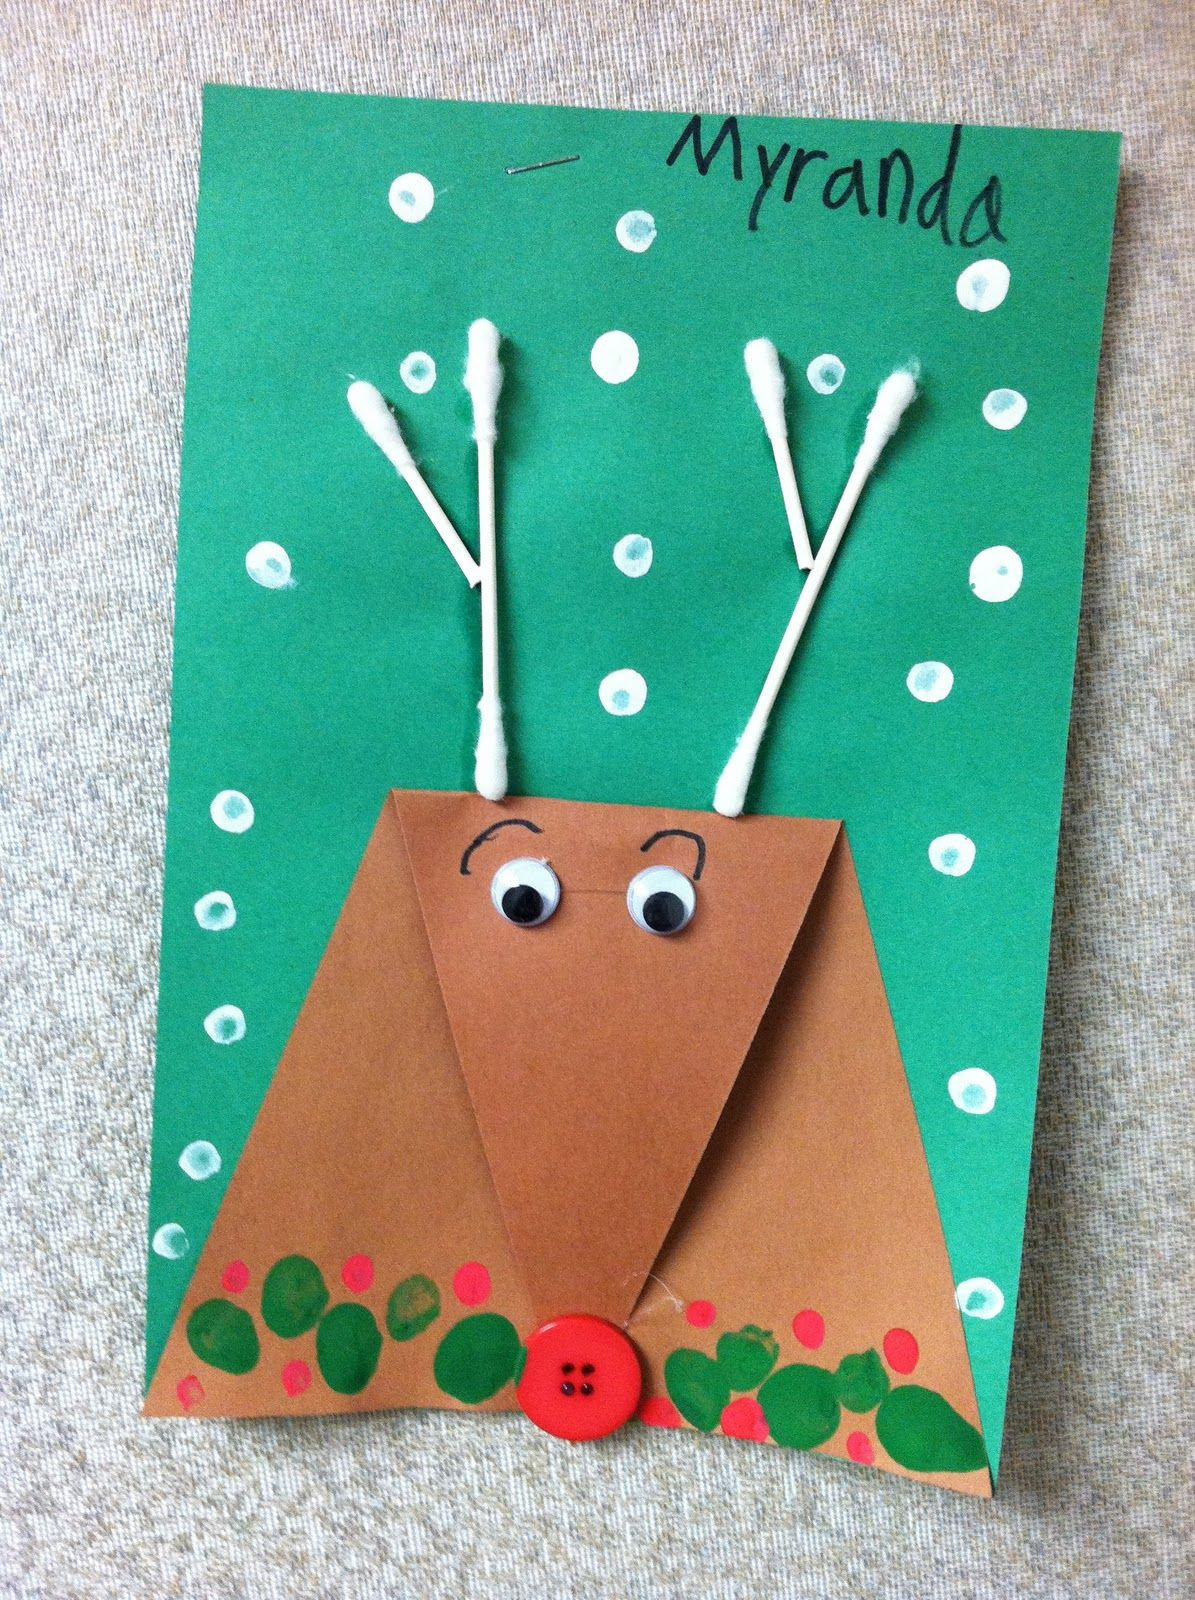 ArtZ KiddoZ - triangle collage dreiecke review at holiday time ...